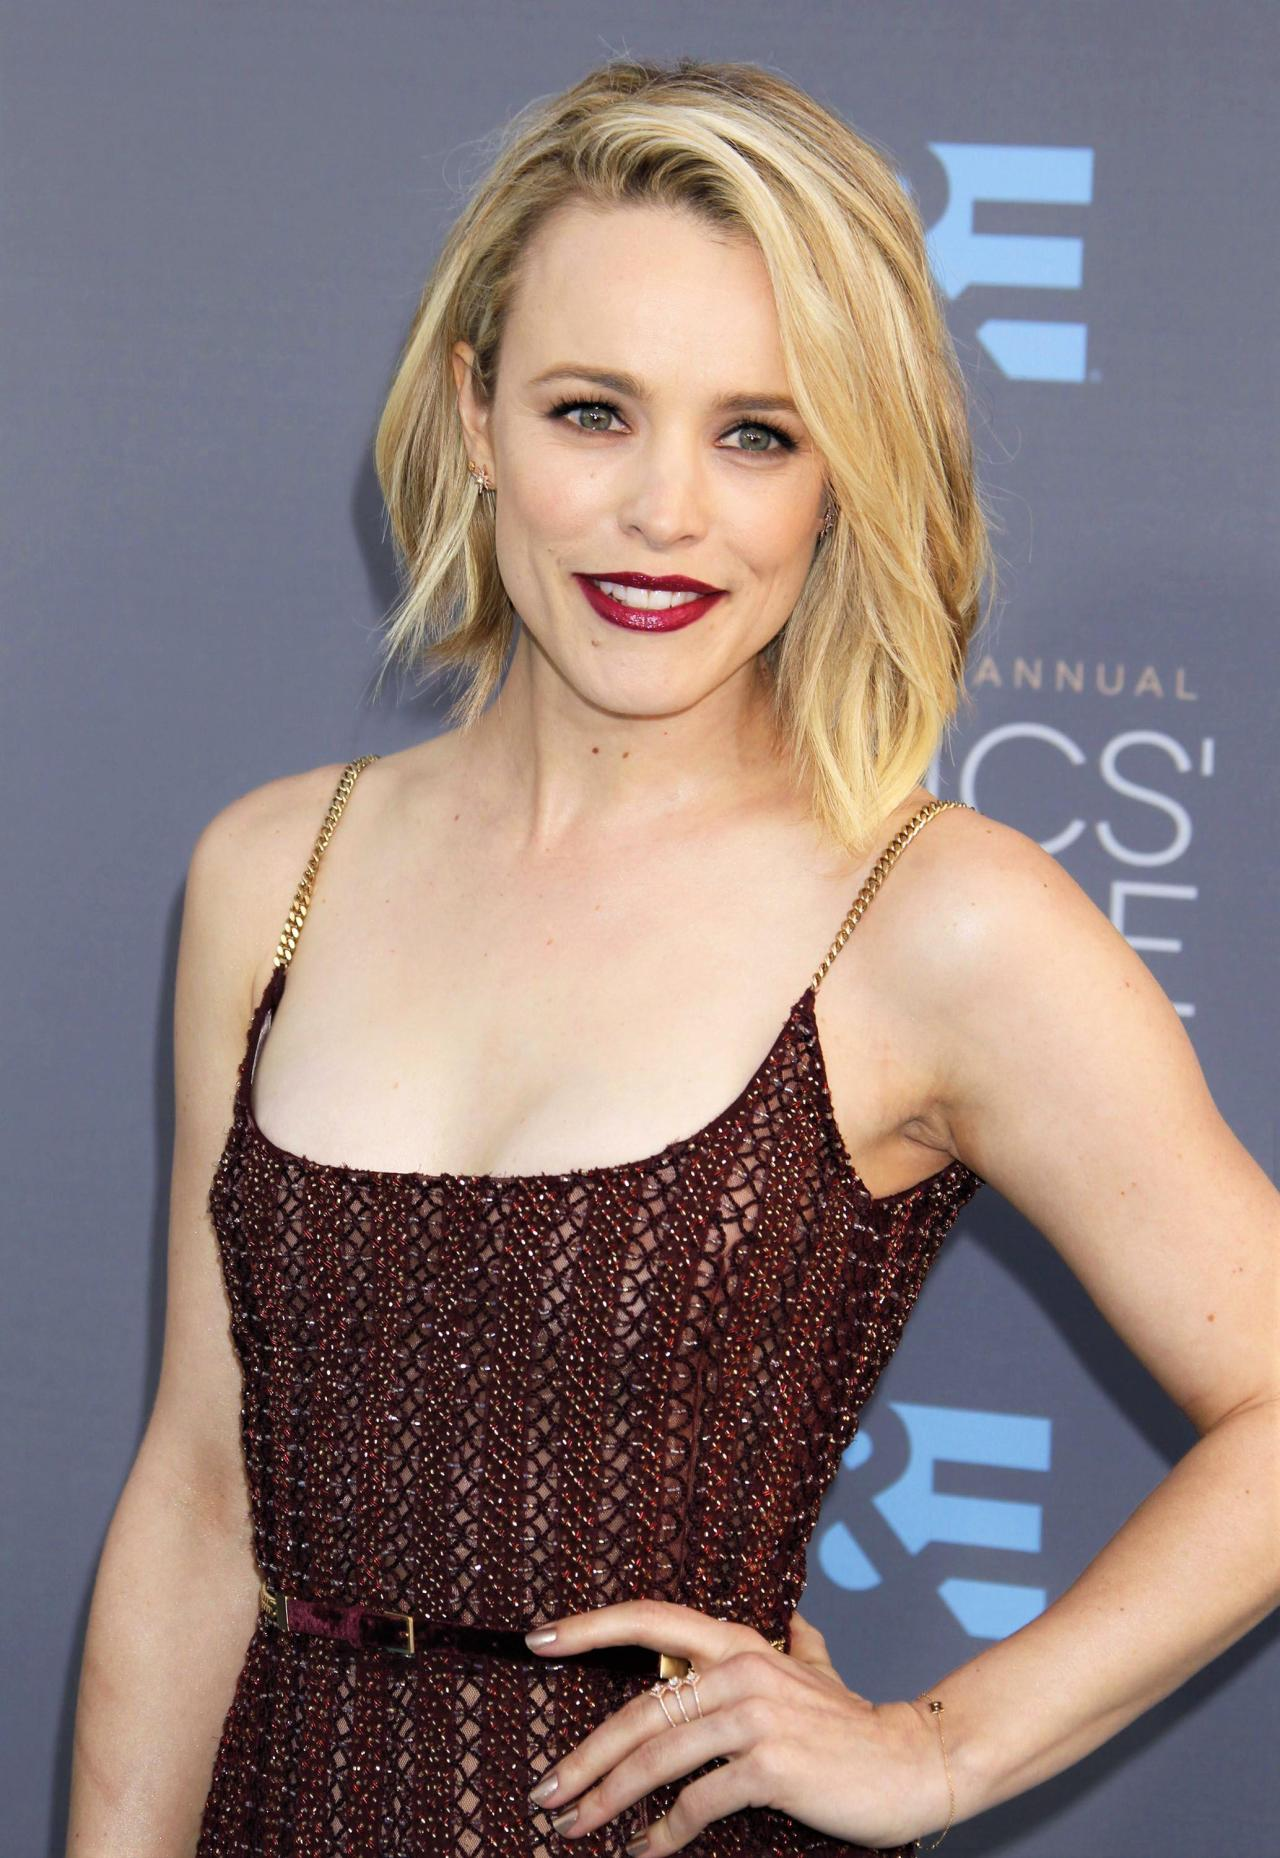 Rachel McAdams #Rachel McAdams#celebrity#actress#model#celebs